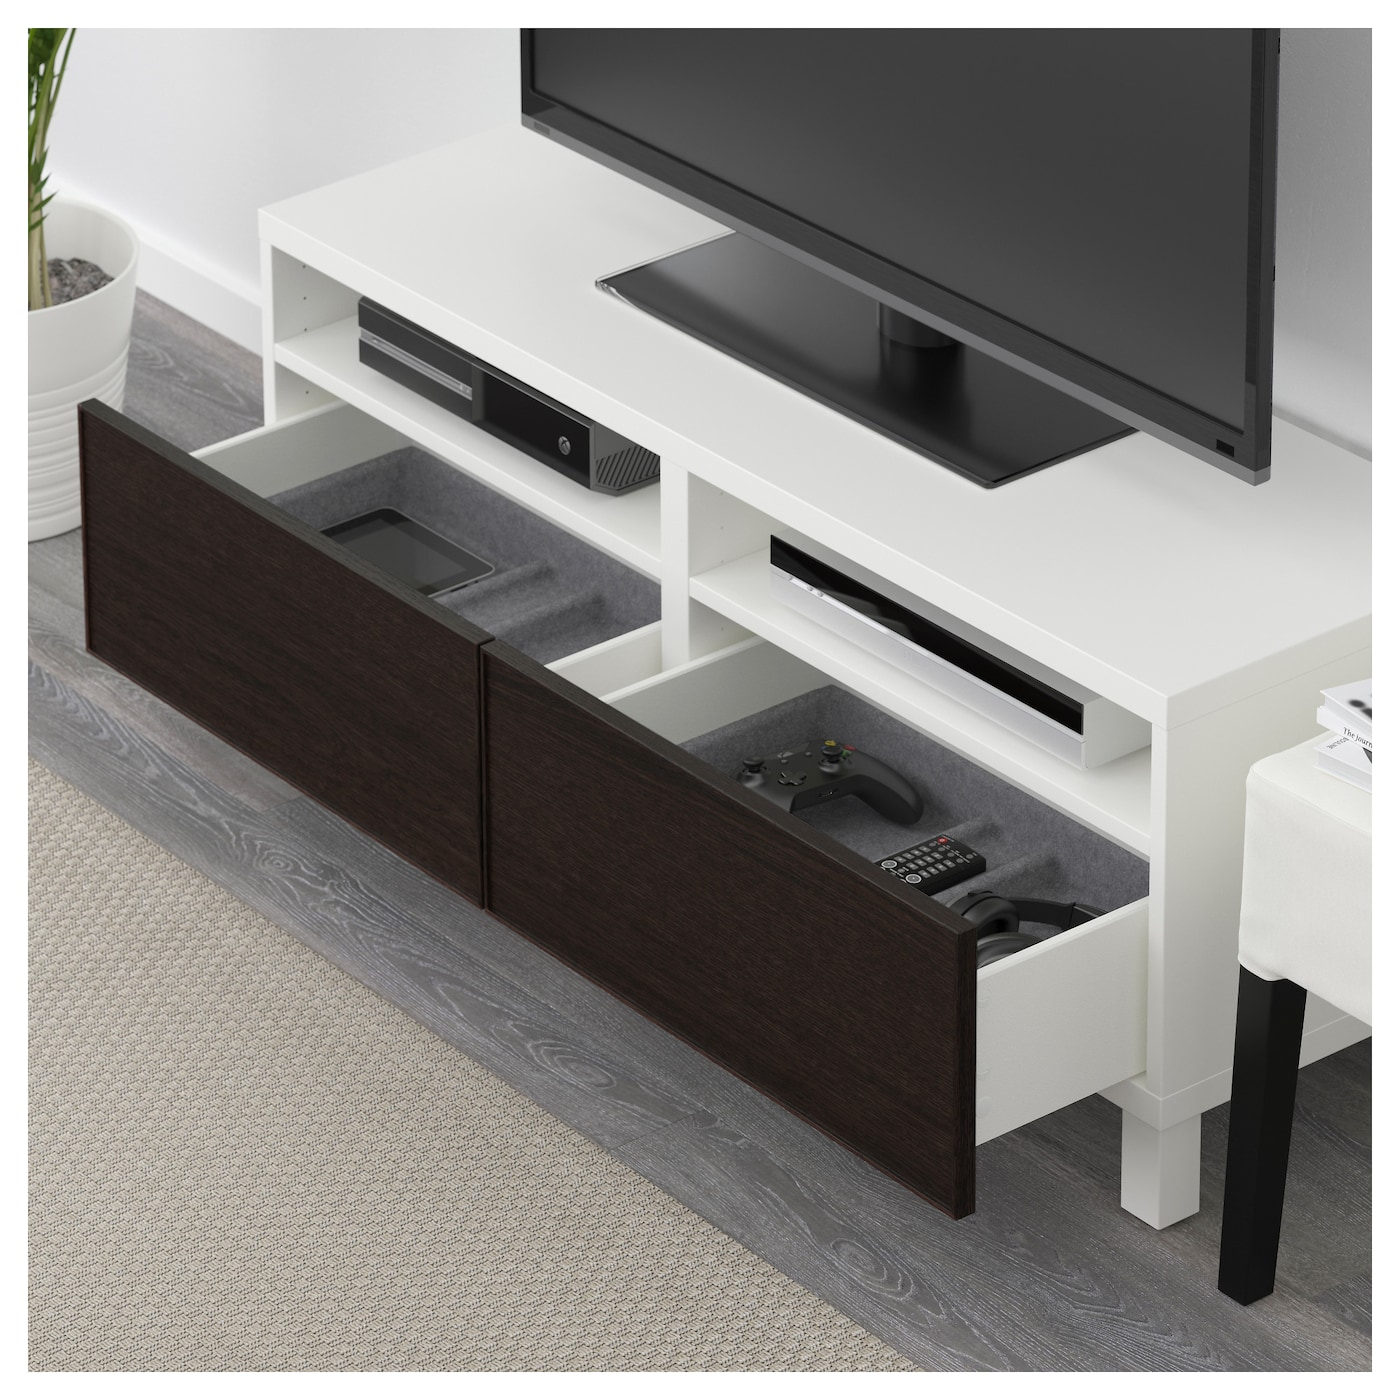 best banc tv avec tiroirs blanc inviken brun noir 120 x 40 x 48 cm ikea. Black Bedroom Furniture Sets. Home Design Ideas